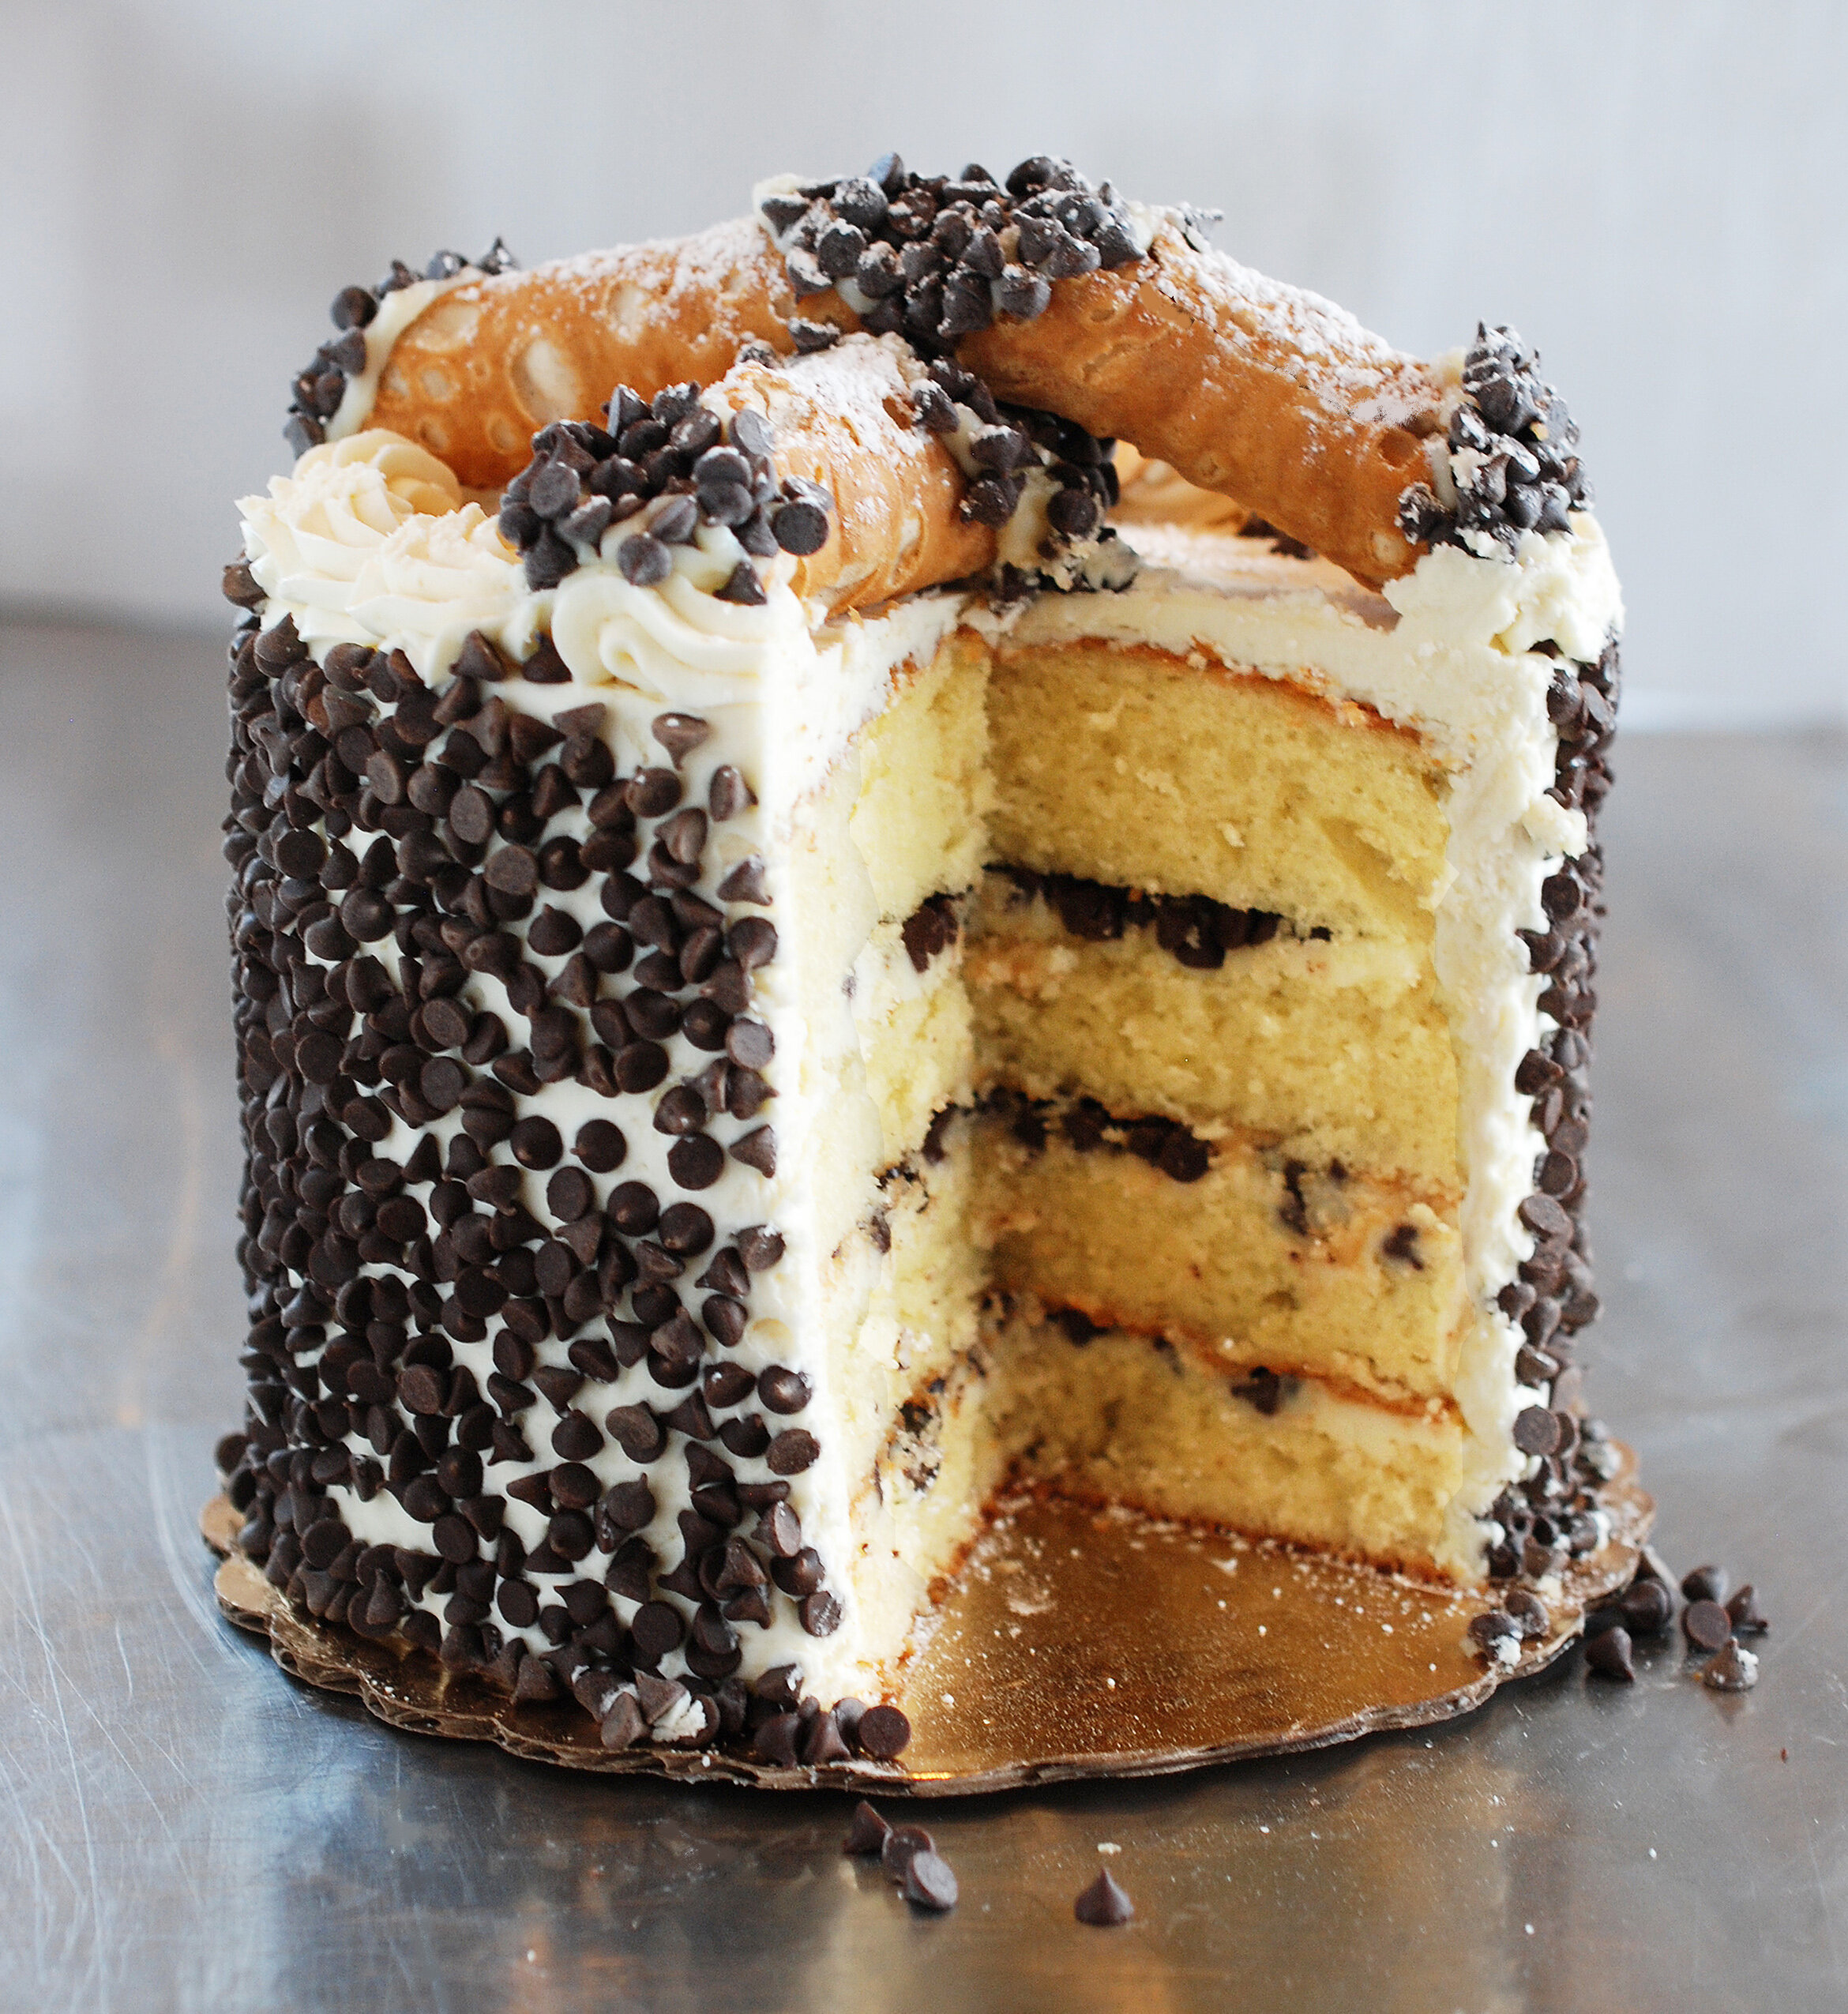 """CANNOLI CAKE - Layered sponge cake with classic New York cream filling topped with fresh cannoli and mini chocolate chips. Need one-week advanced notice. Available for pick-up at our Seattle location.6"""" $408"""" $6010"""" $80CALL FOR PRICING ON LARGE CAKES"""